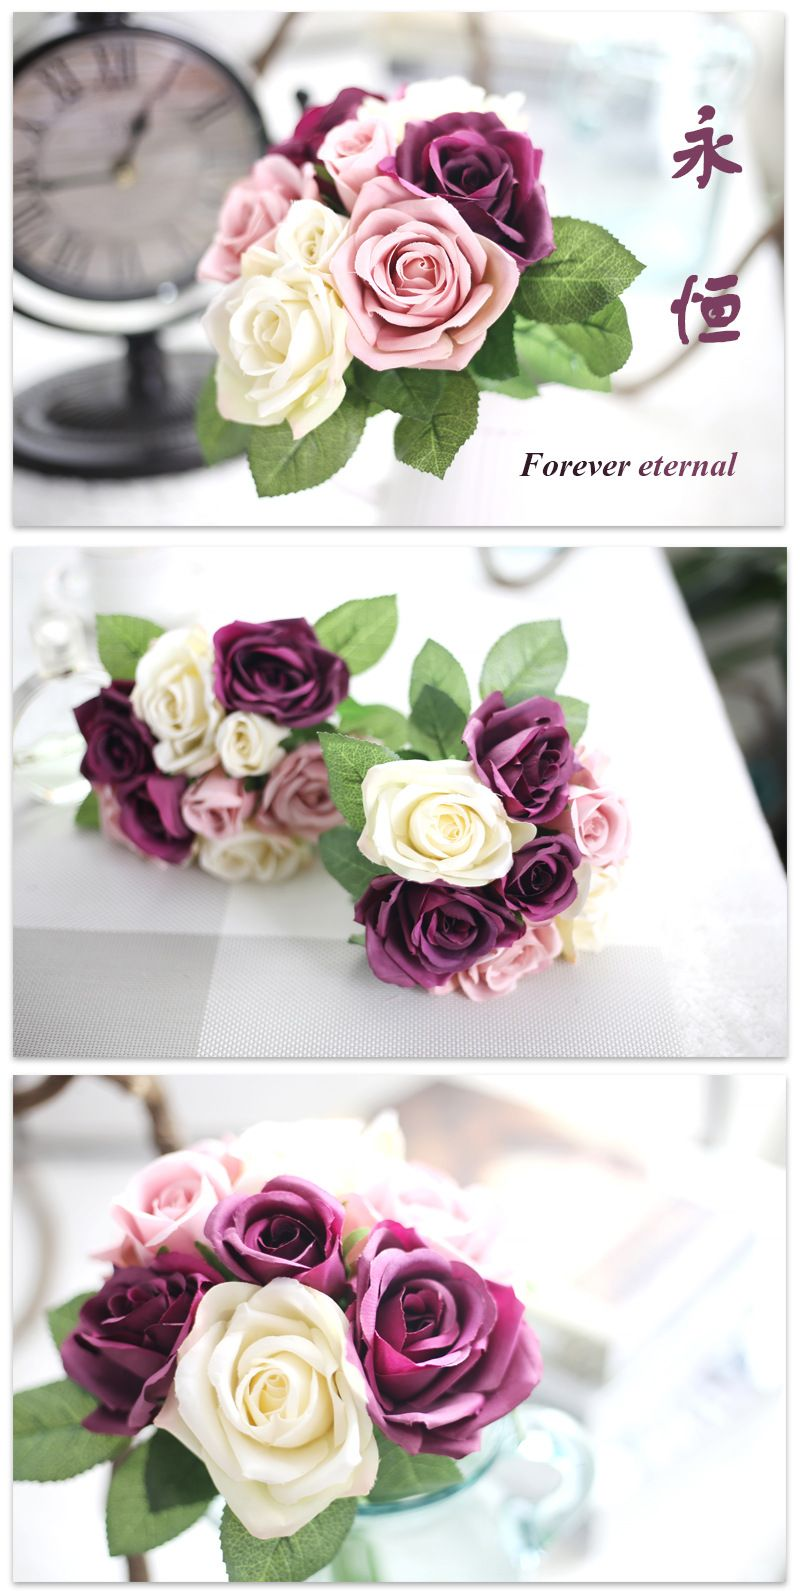 Silk Flowersilk Flower Arrangementssilk Flower Petals Silk